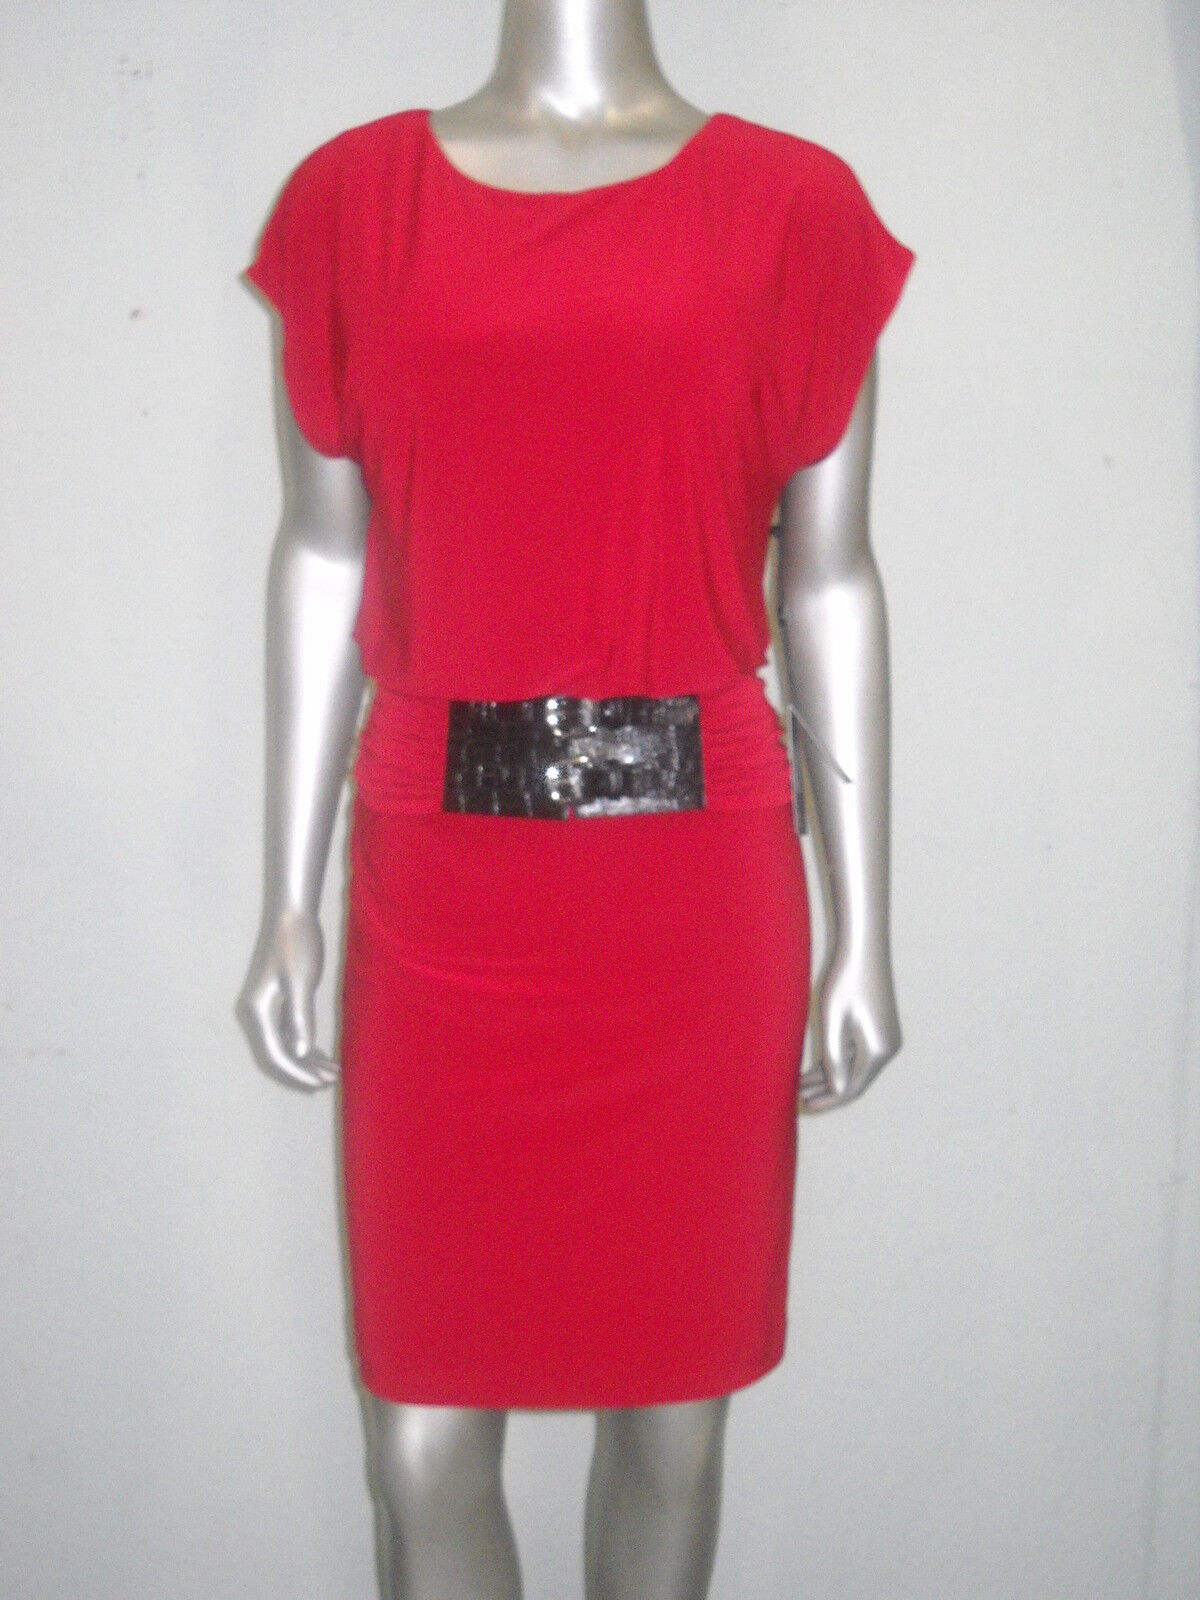 Adrianna Papell Women's Red Blouson Belted Dress Size 4